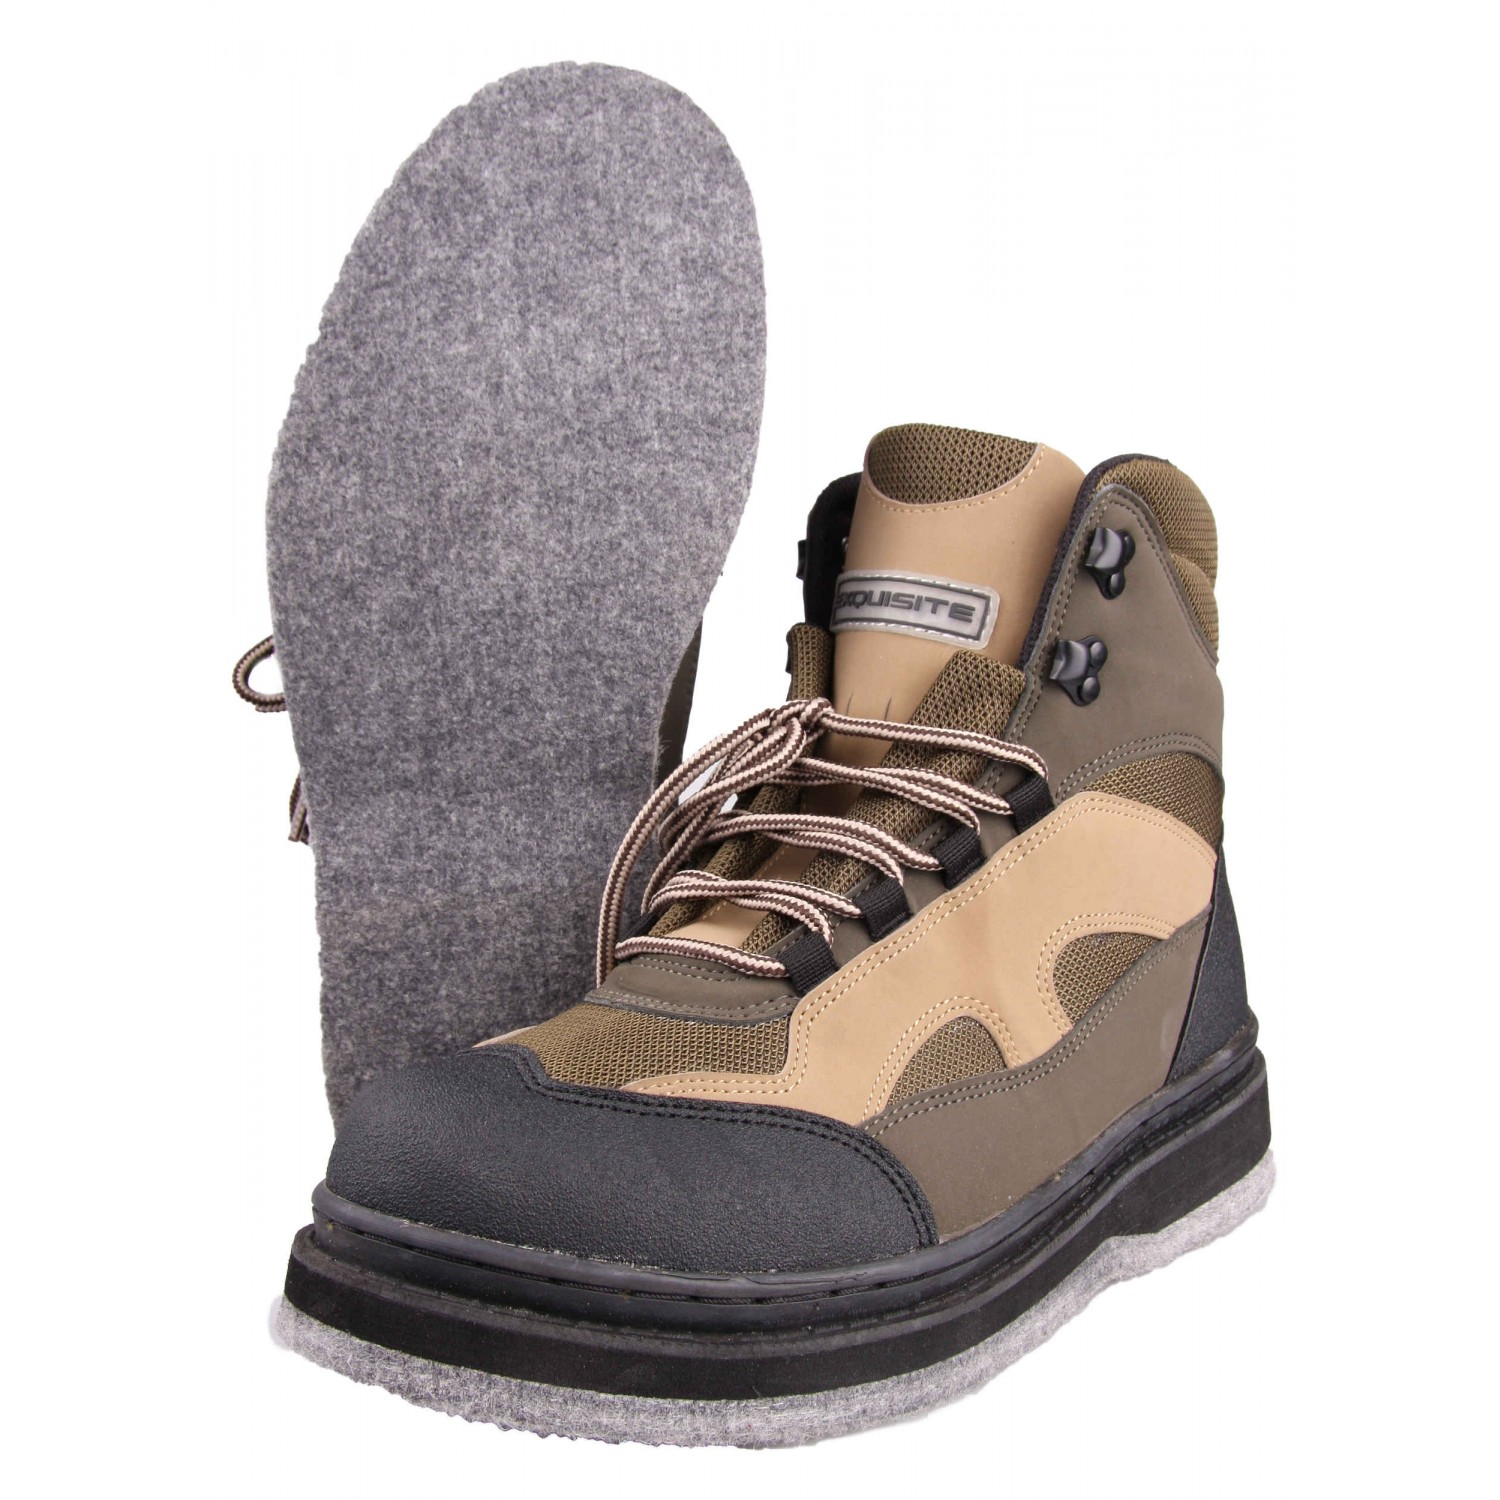 D A M Exquisite Wading Boots Felt Soles Glasgow Angling